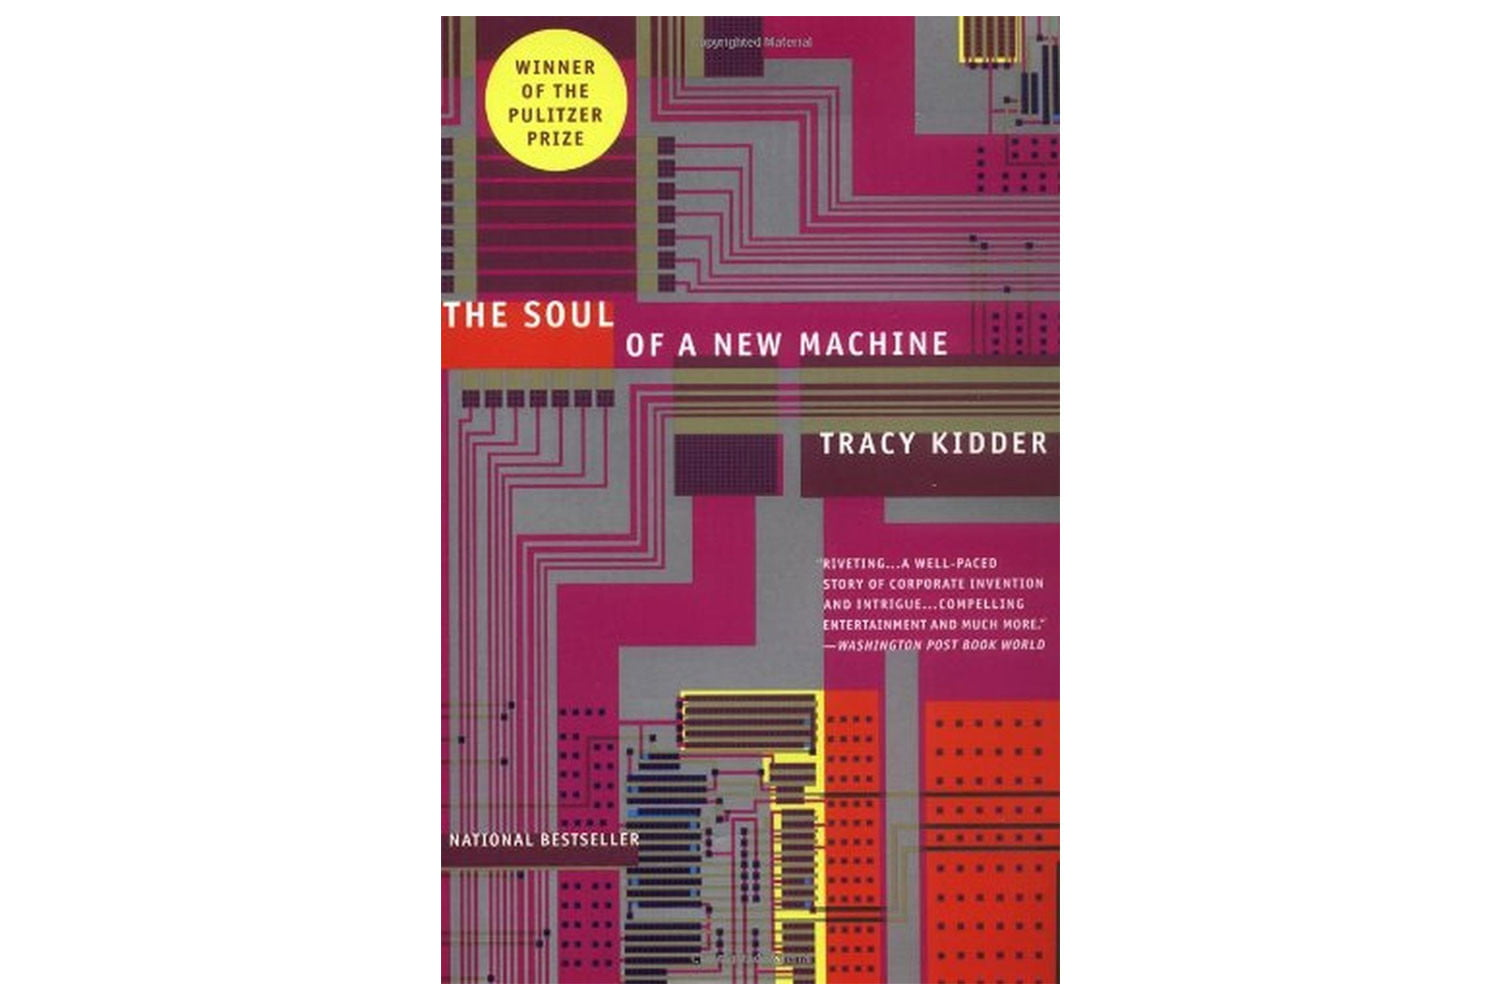 the soul of the new machine essay Soul definition, the principle of life, feeling, thought, and action in humans, regarded as a distinct entity separate from the body, and commonly held to be separable in existence from the body the spiritual part of humans as distinct from the physical part.